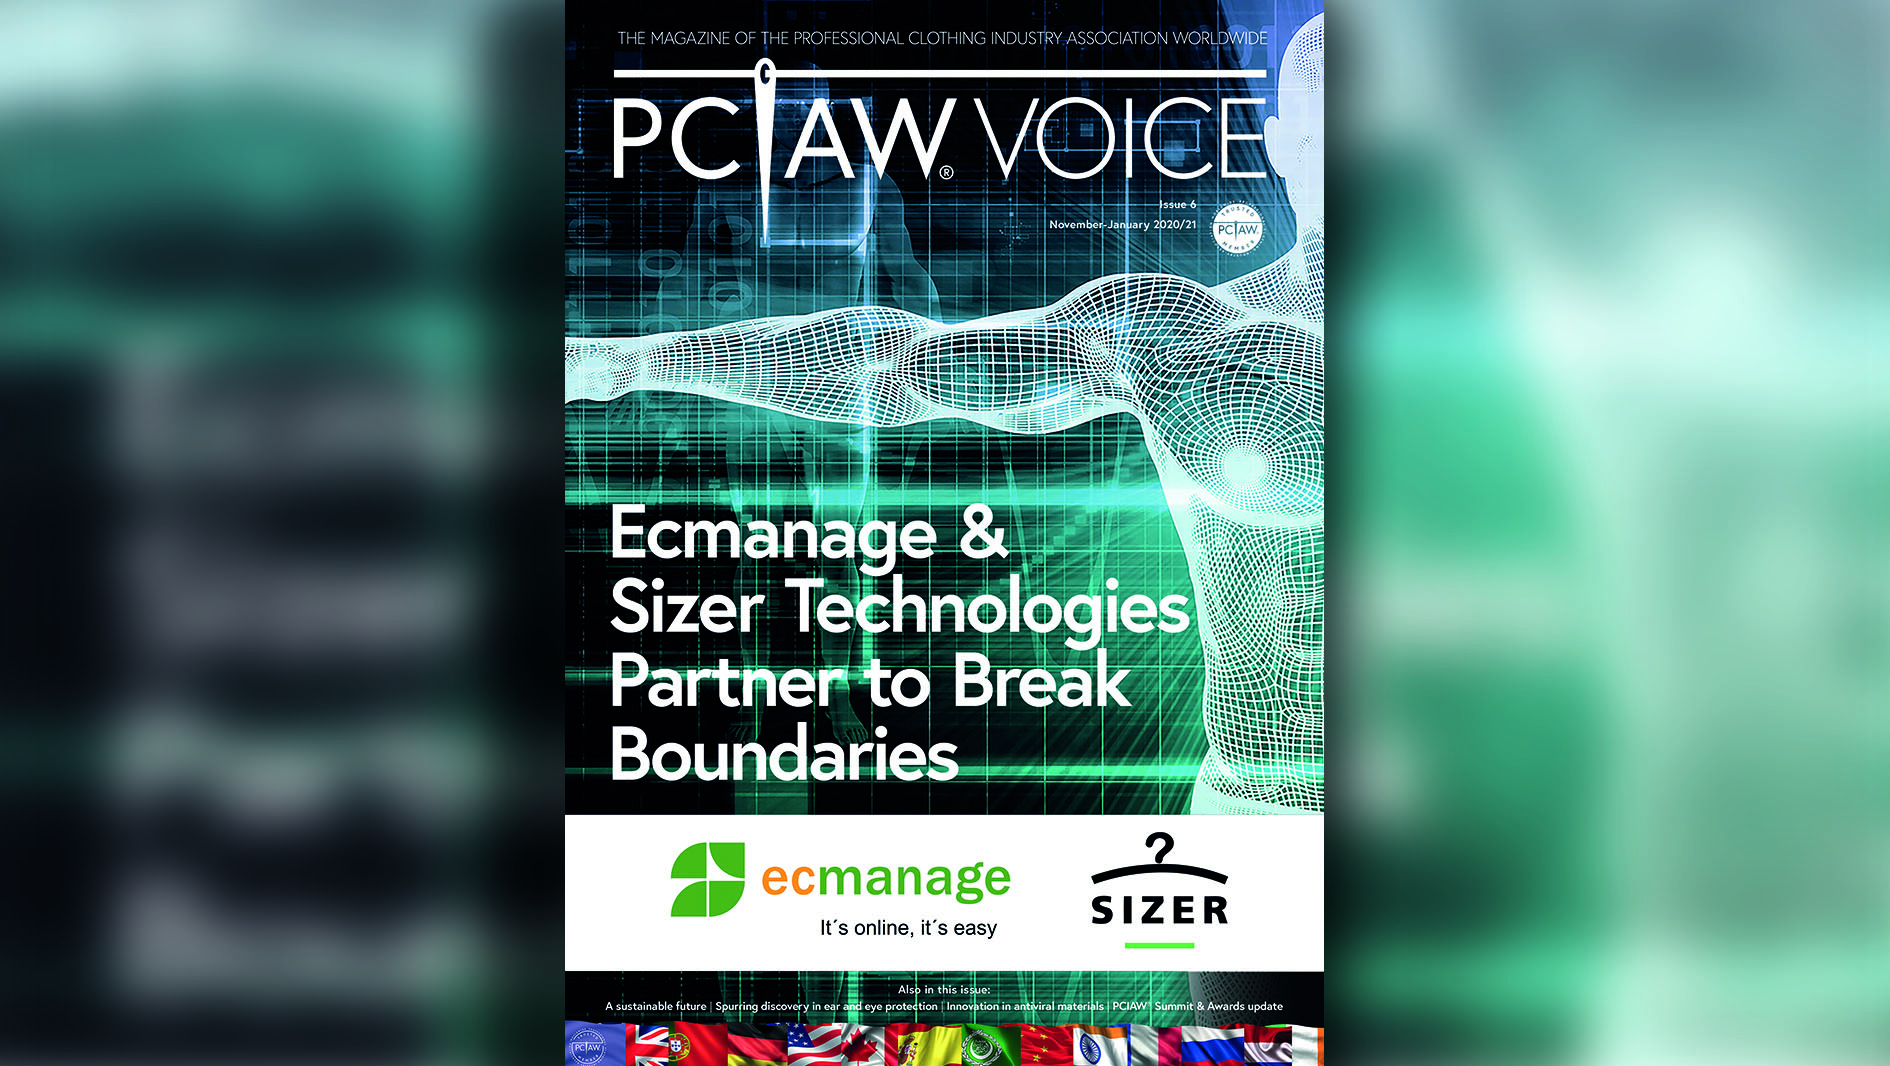 PCIAW®VOICE Issue 6 - Front cover